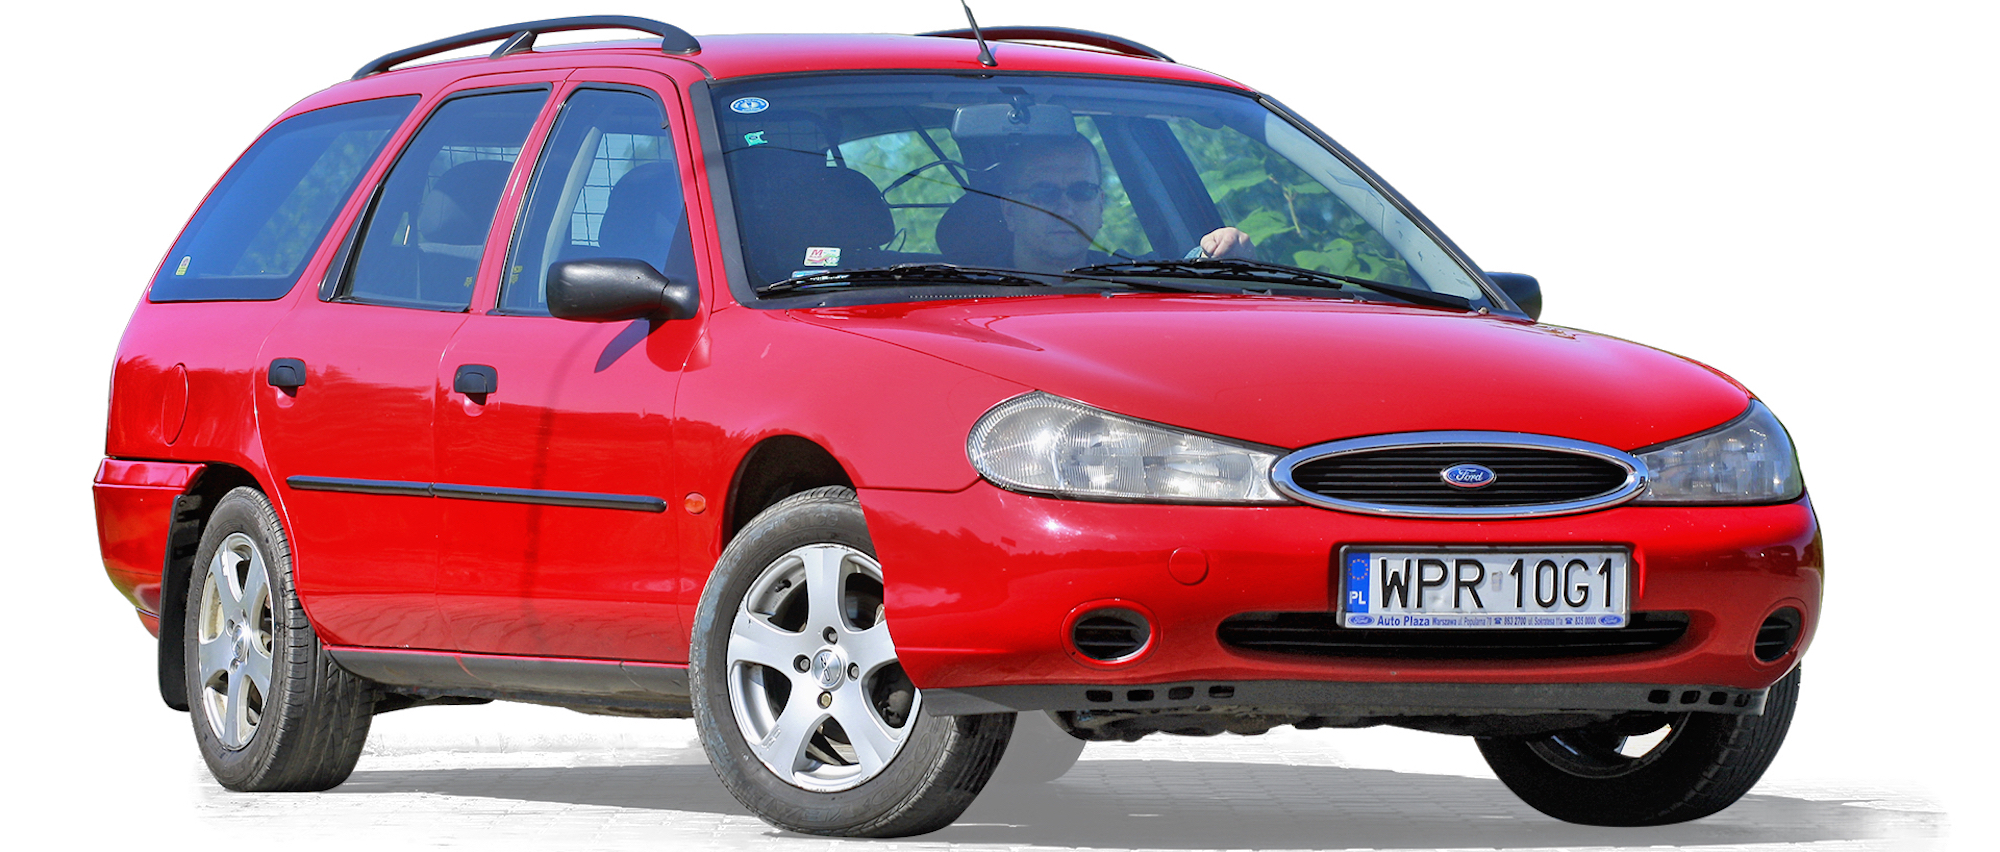 Ford Mondeo Mk2 (1996-2000)